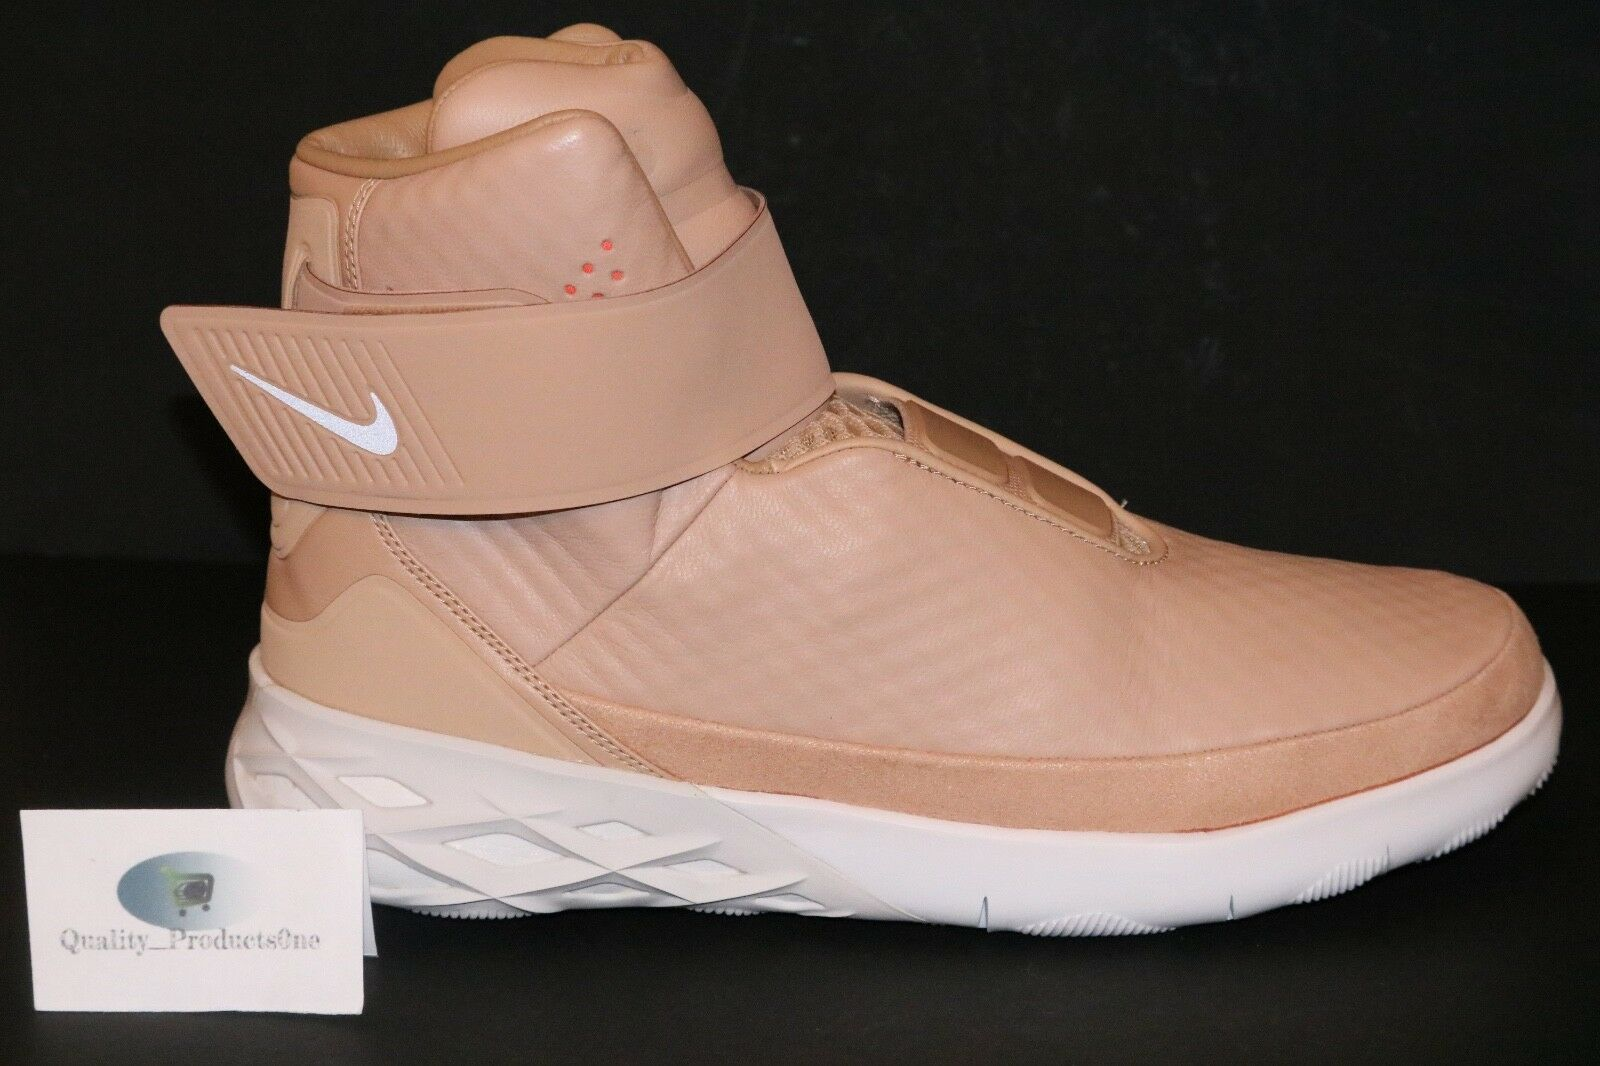 Nike Swoosh Hunter Vachetta Tan Summit White 832820 200 Men's Sz 10-11